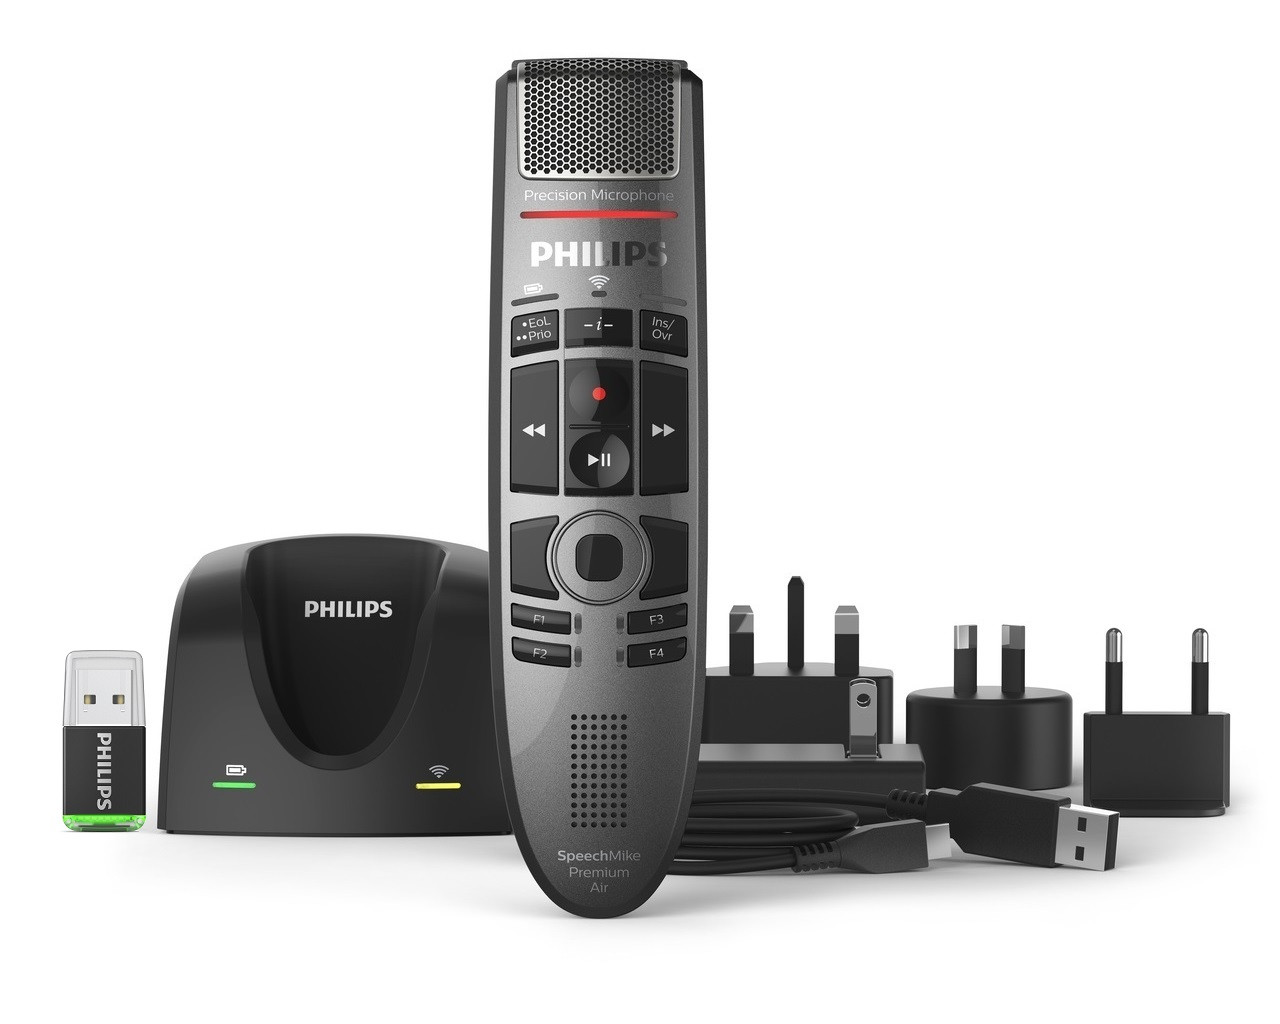 Philips SMP4000 SpeechMike Premium Air Wireless Dictation